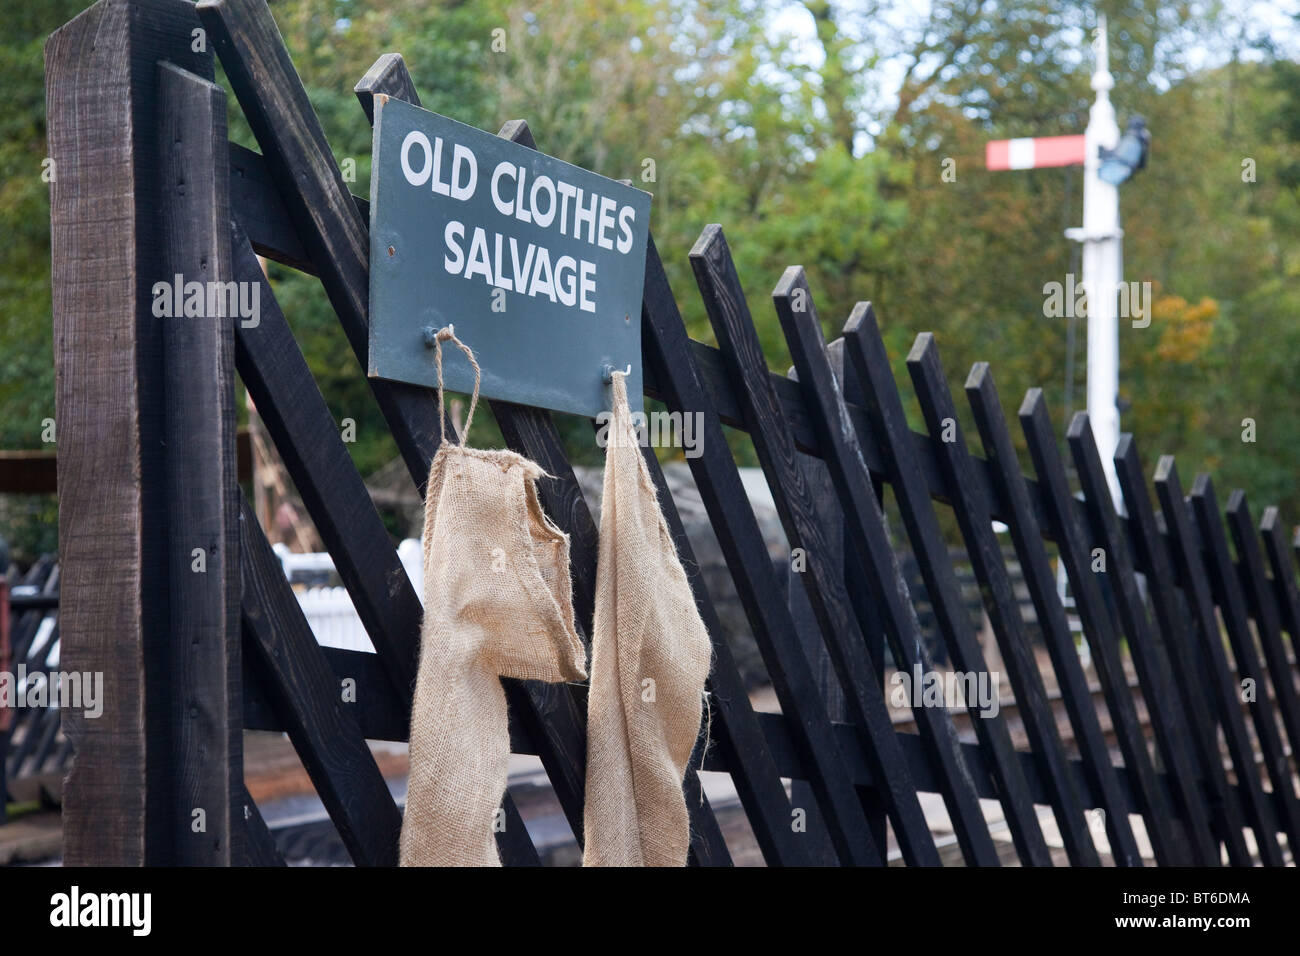 Collection Point for Old Clothes, reuse, recycle, recycling, Salvage and old clothes bags hung on wooden fence in - Stock Image